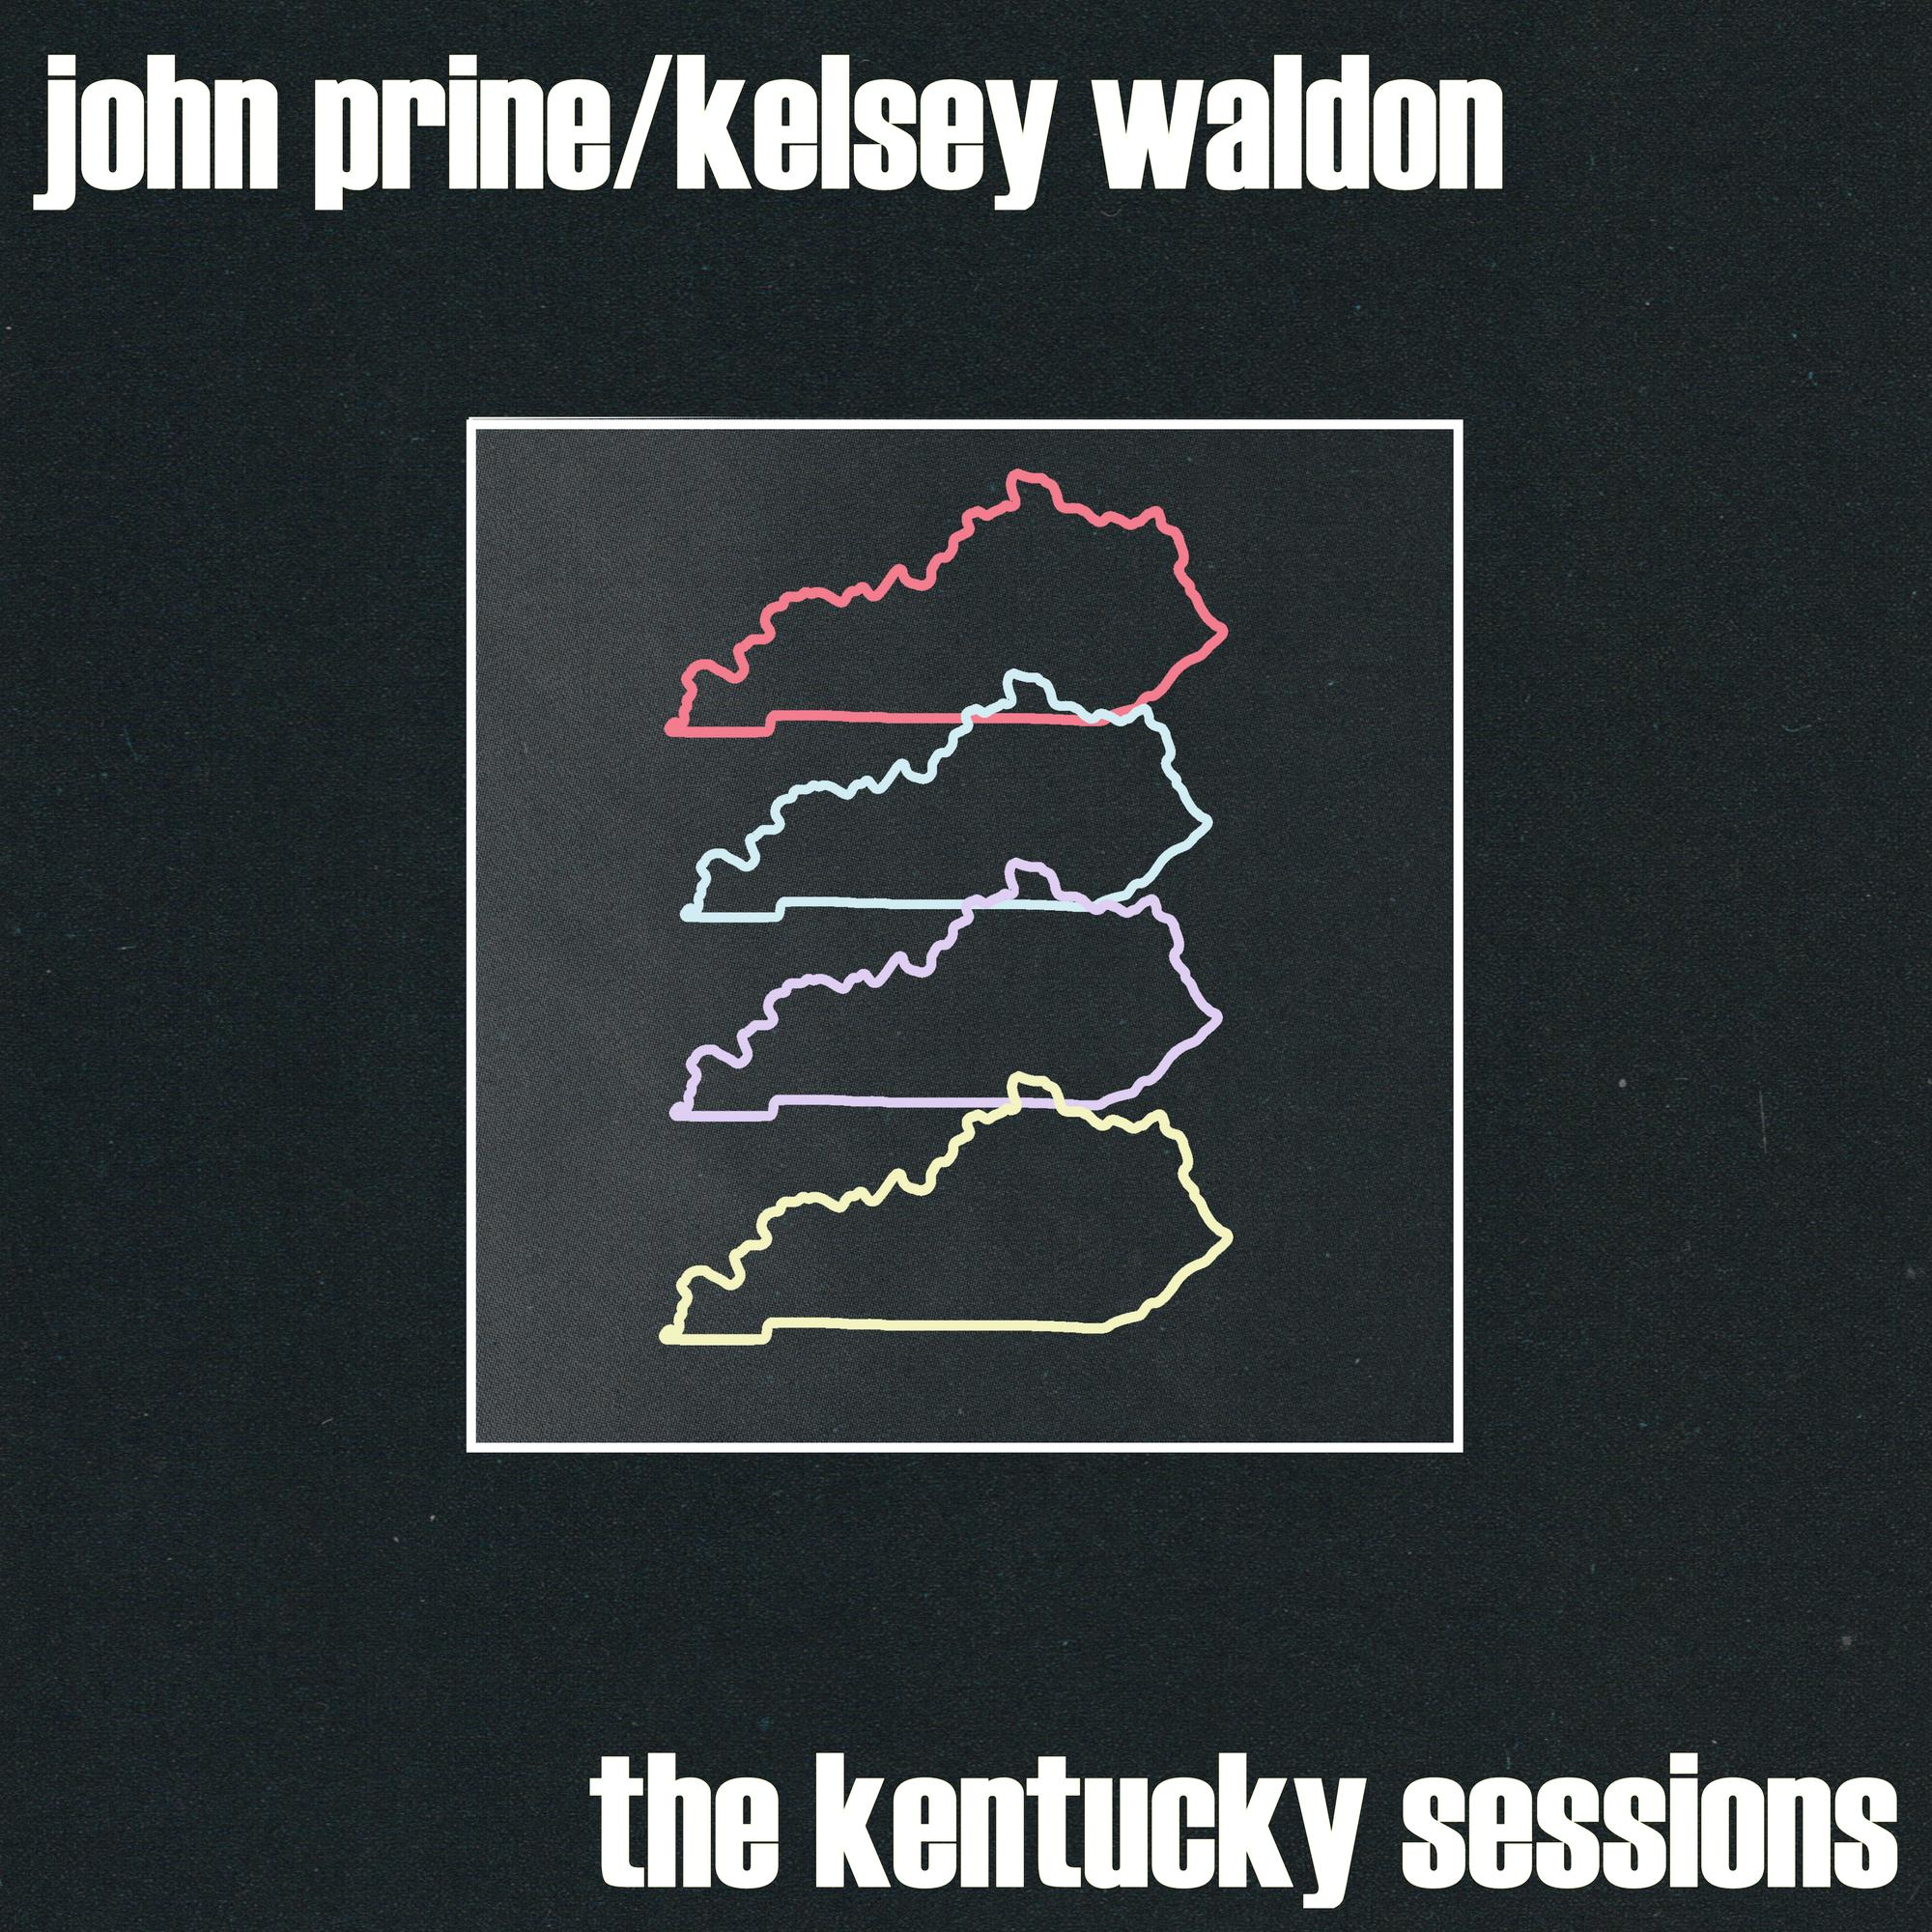 John Prine/Kelsey Waldon - The Kentucky Sessions [RSD Drops Aug 2020]